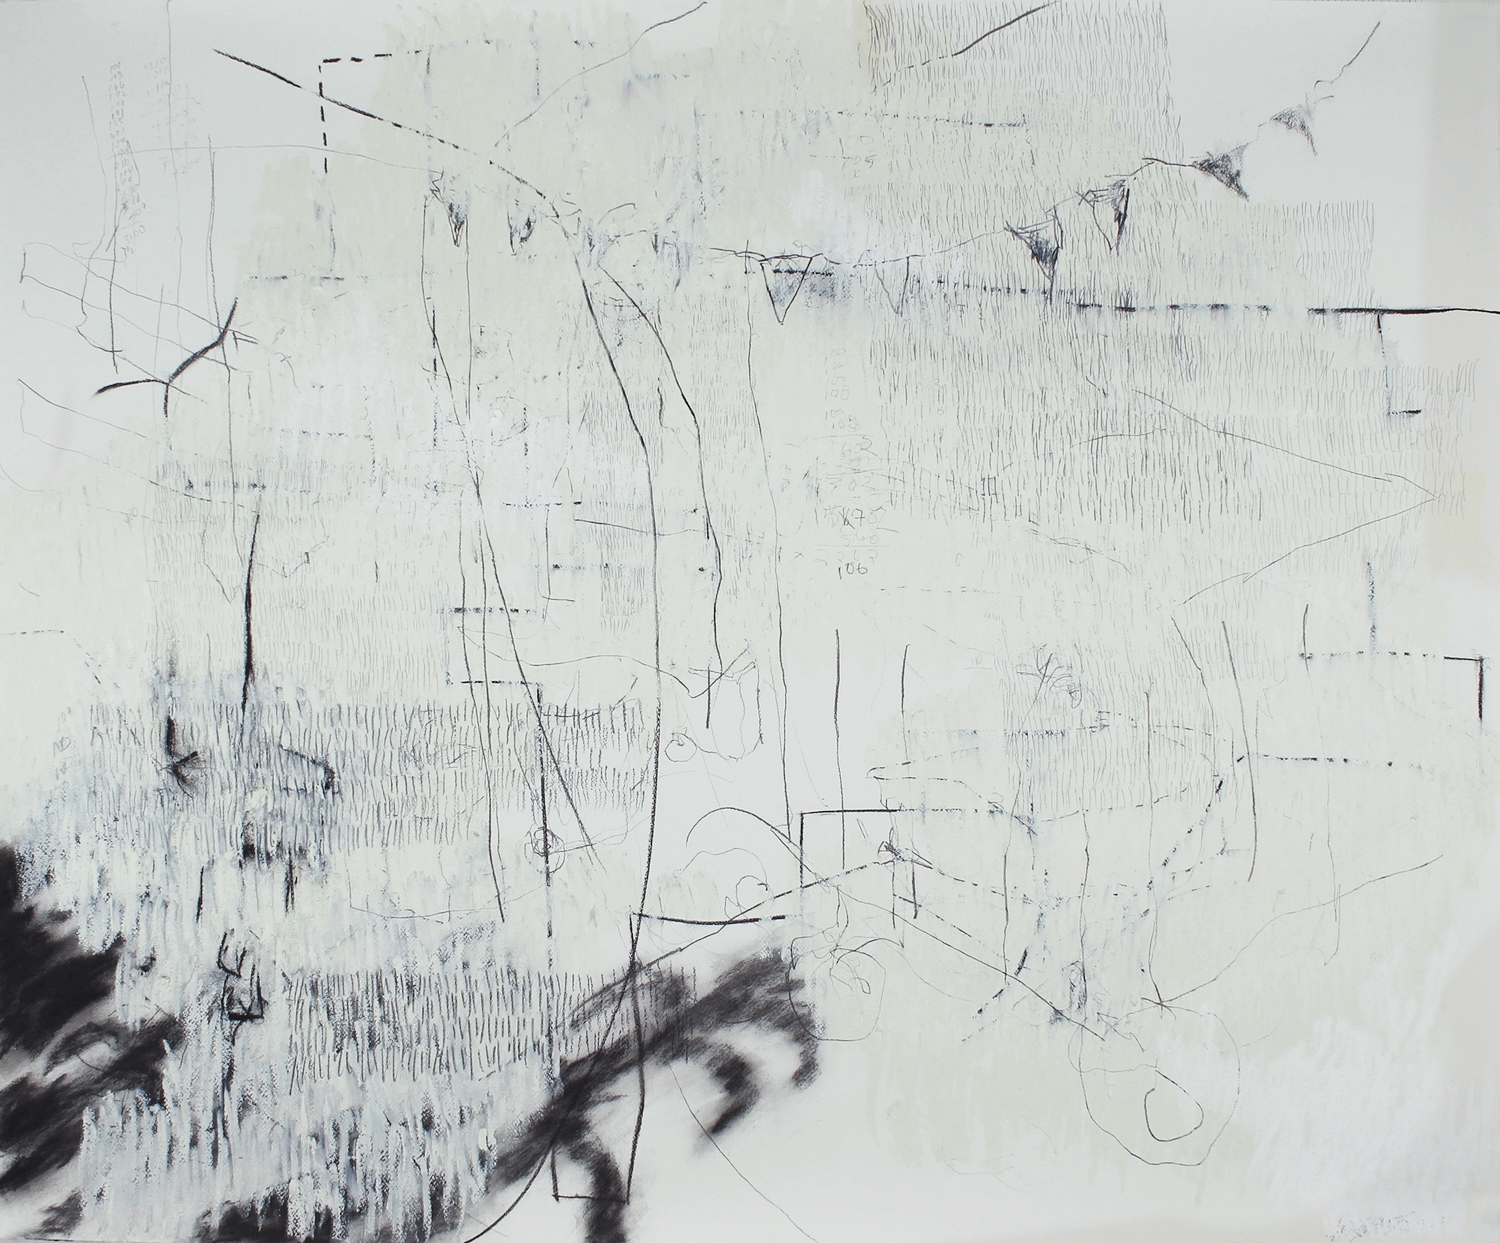 """7,930 Steps to Tania (McDowell Road),  Graphite, charcoal, oil on paper,  14.2"""" x 17.5"""", 2010"""